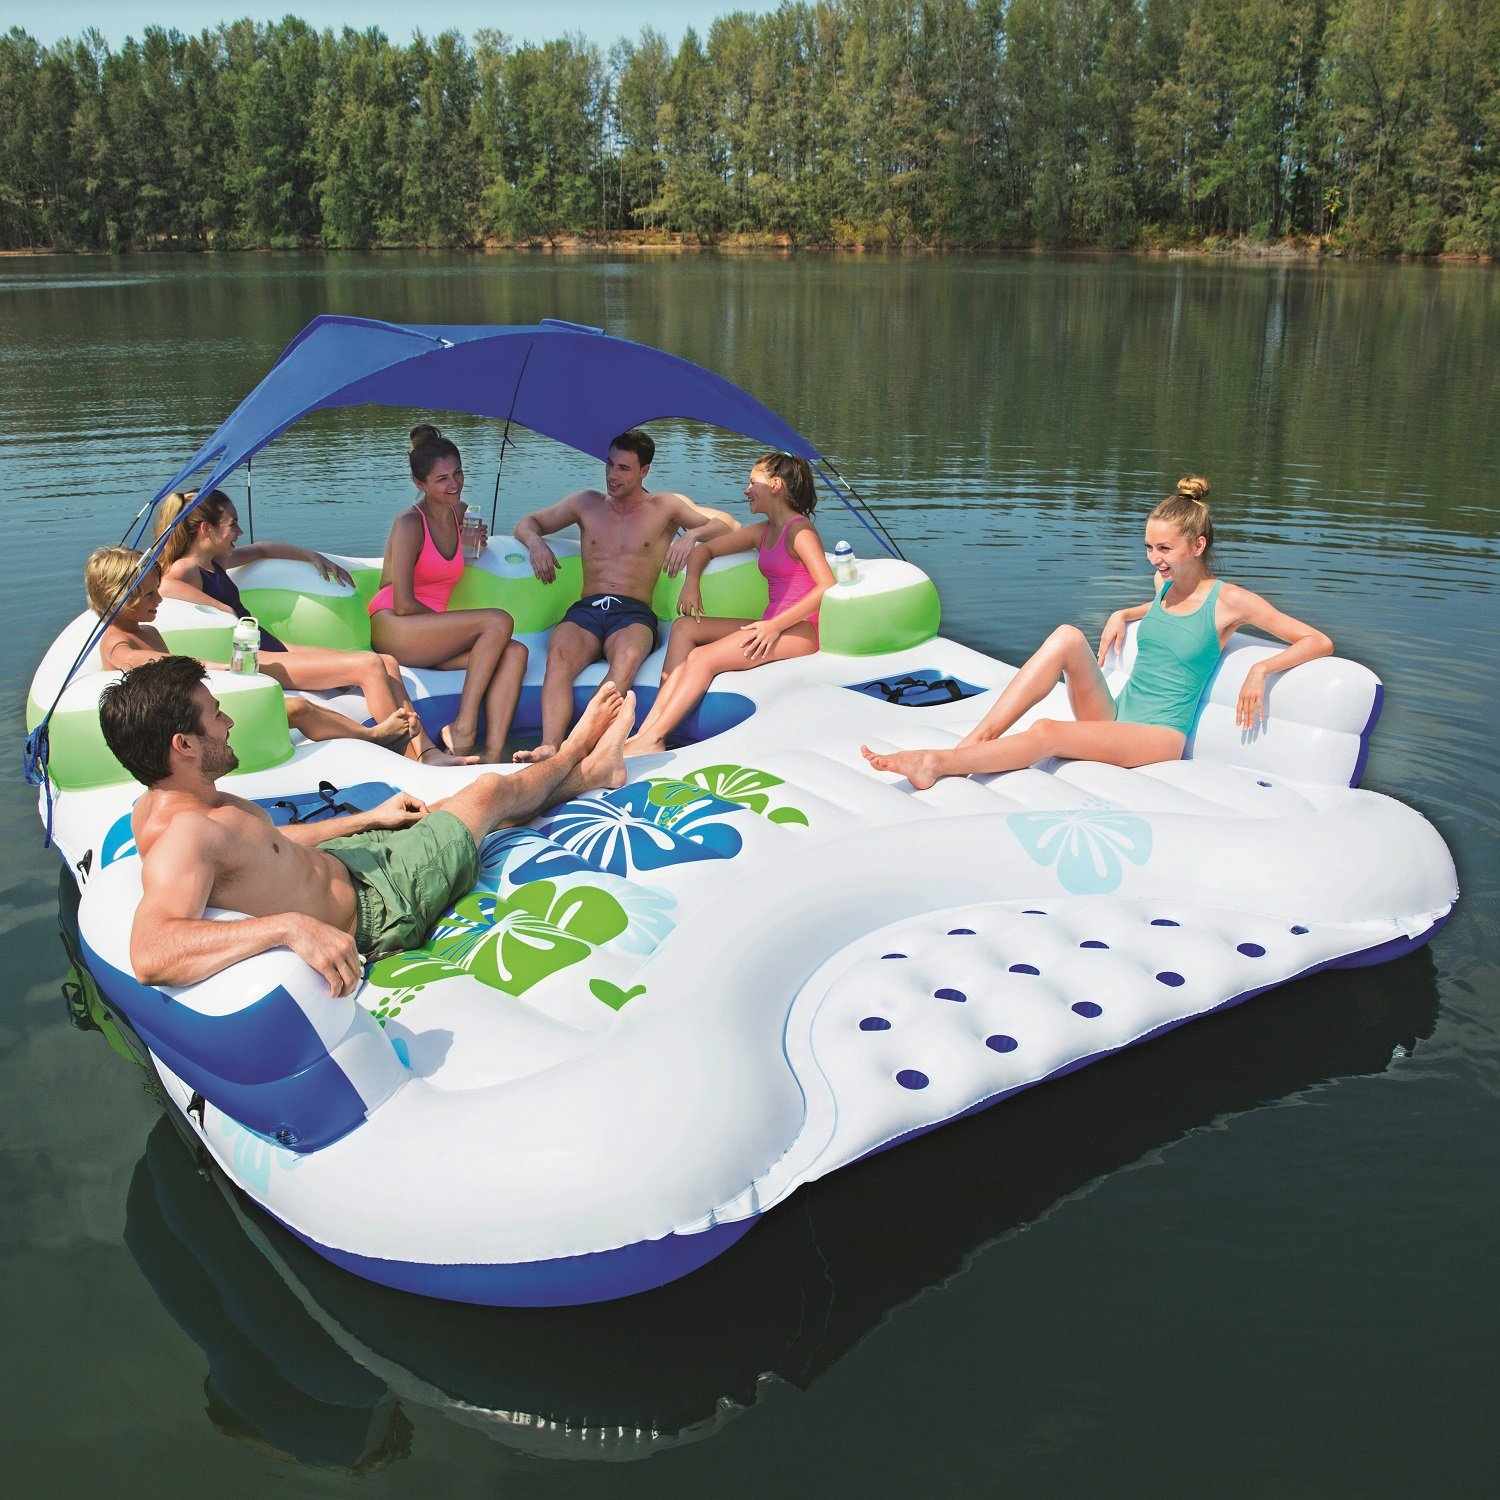 X5 canopy island for Pool floats design raises questions